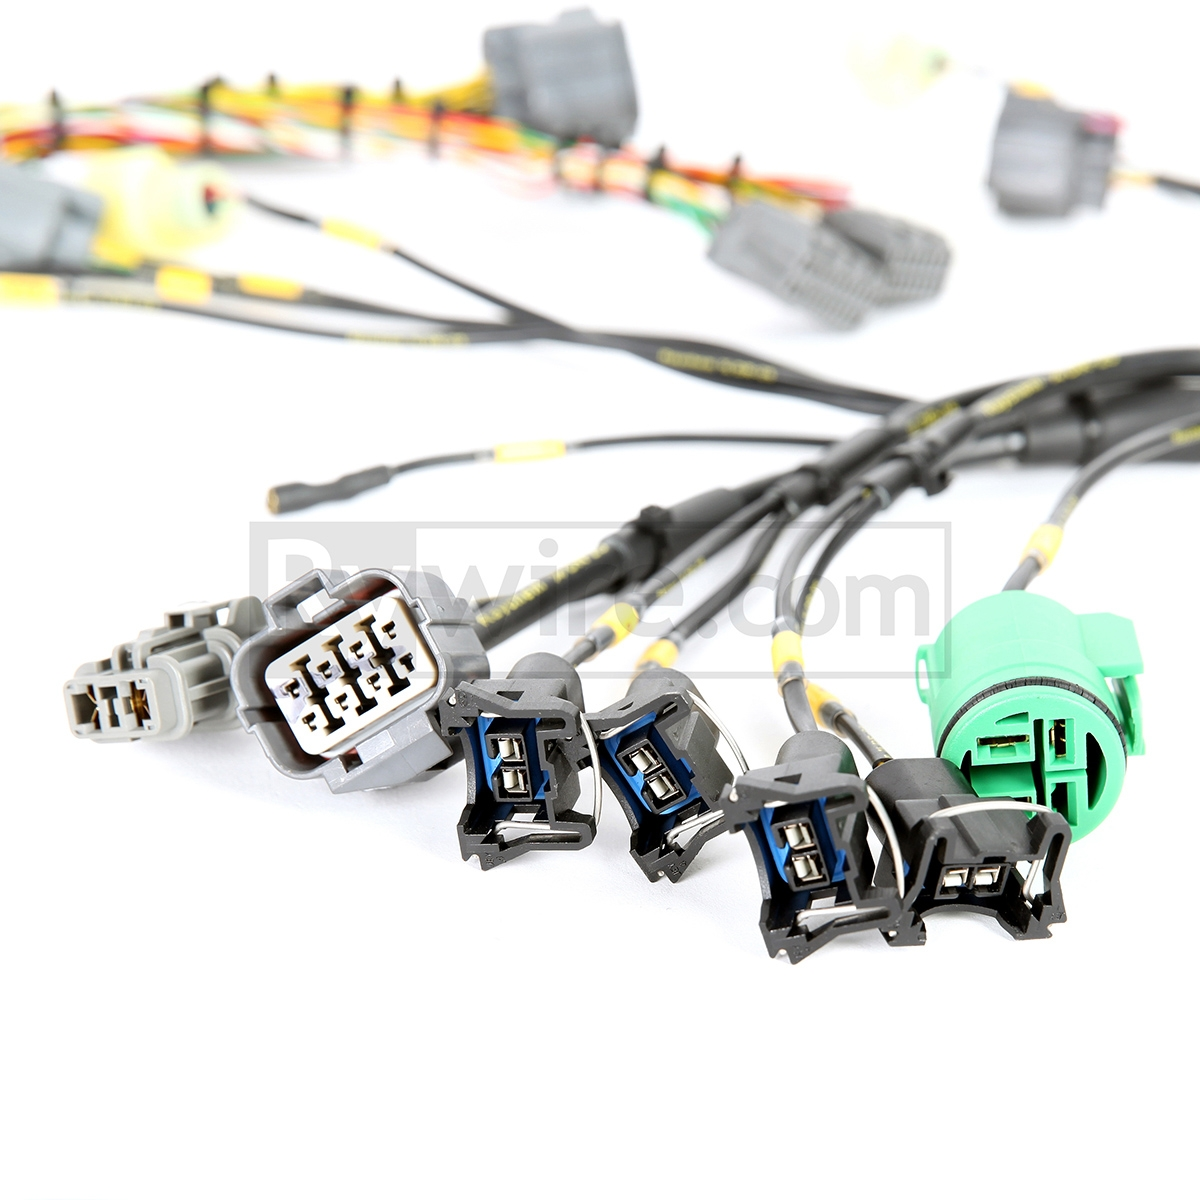 hight resolution of honda wiring harness connectors wiring diagram third level rh 19 1 16 jacobwinterstein com chase bays wiring harness chase bays wiring harness